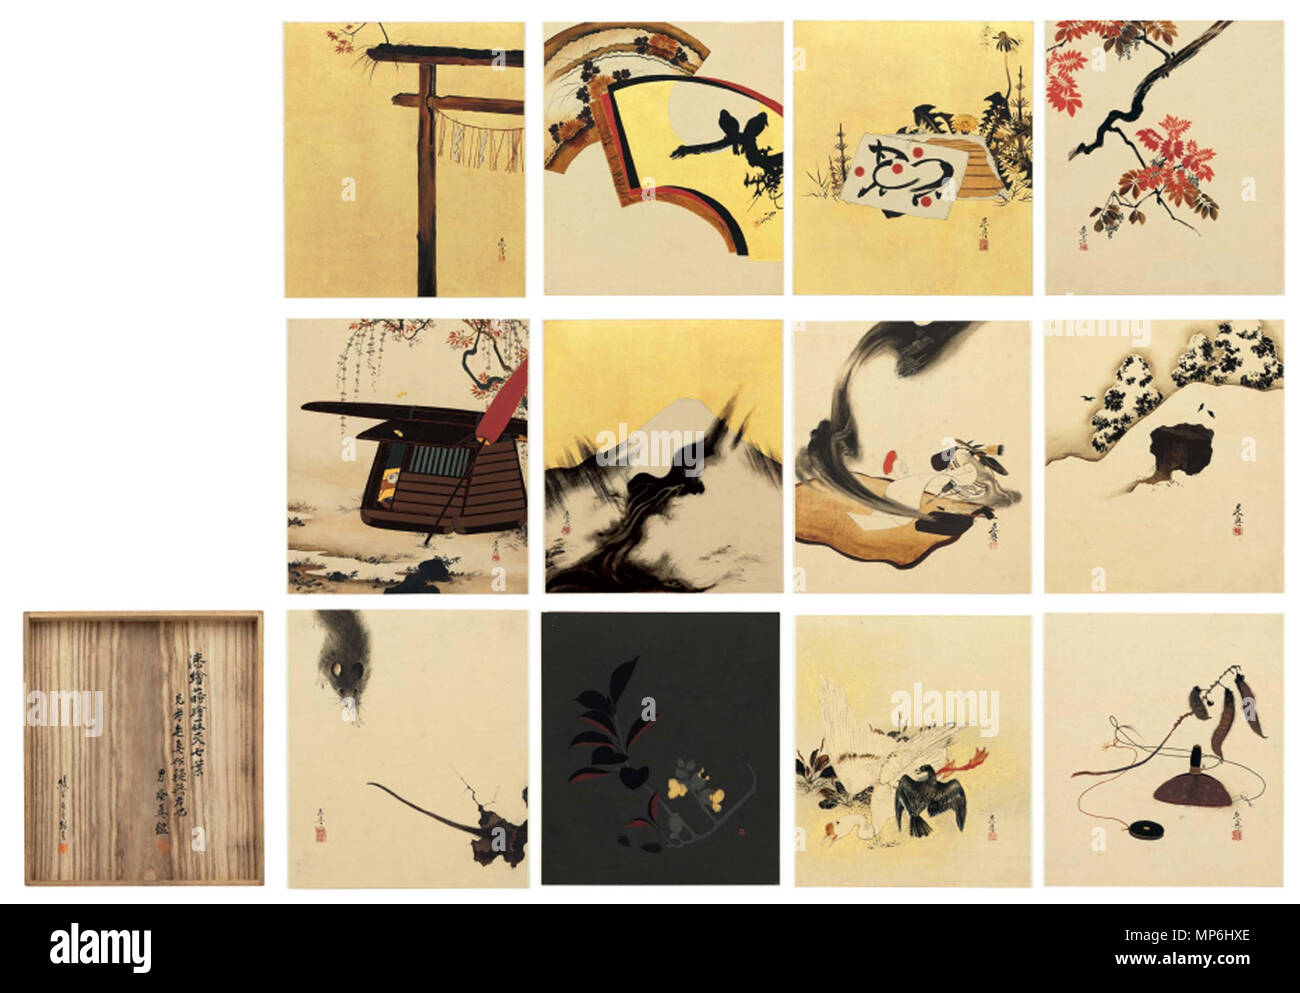 .  English: Shibata Zeshin (1807-1891) Album of twelve lacquer paintings Each signed Zeshin, sealed Koma, Zeshin, Shin or Tairyukyo Twelve paintings for an accordion album; lacquer on paper or lacquer and gold leaf on paper 7 5/8 x 6 5/8in. (19.5 x 16.8cm.) each approx. . 19th century.   1115 Shibata Zeshin (1807-1891), Album of 12 lacquer paintings - Stock Image